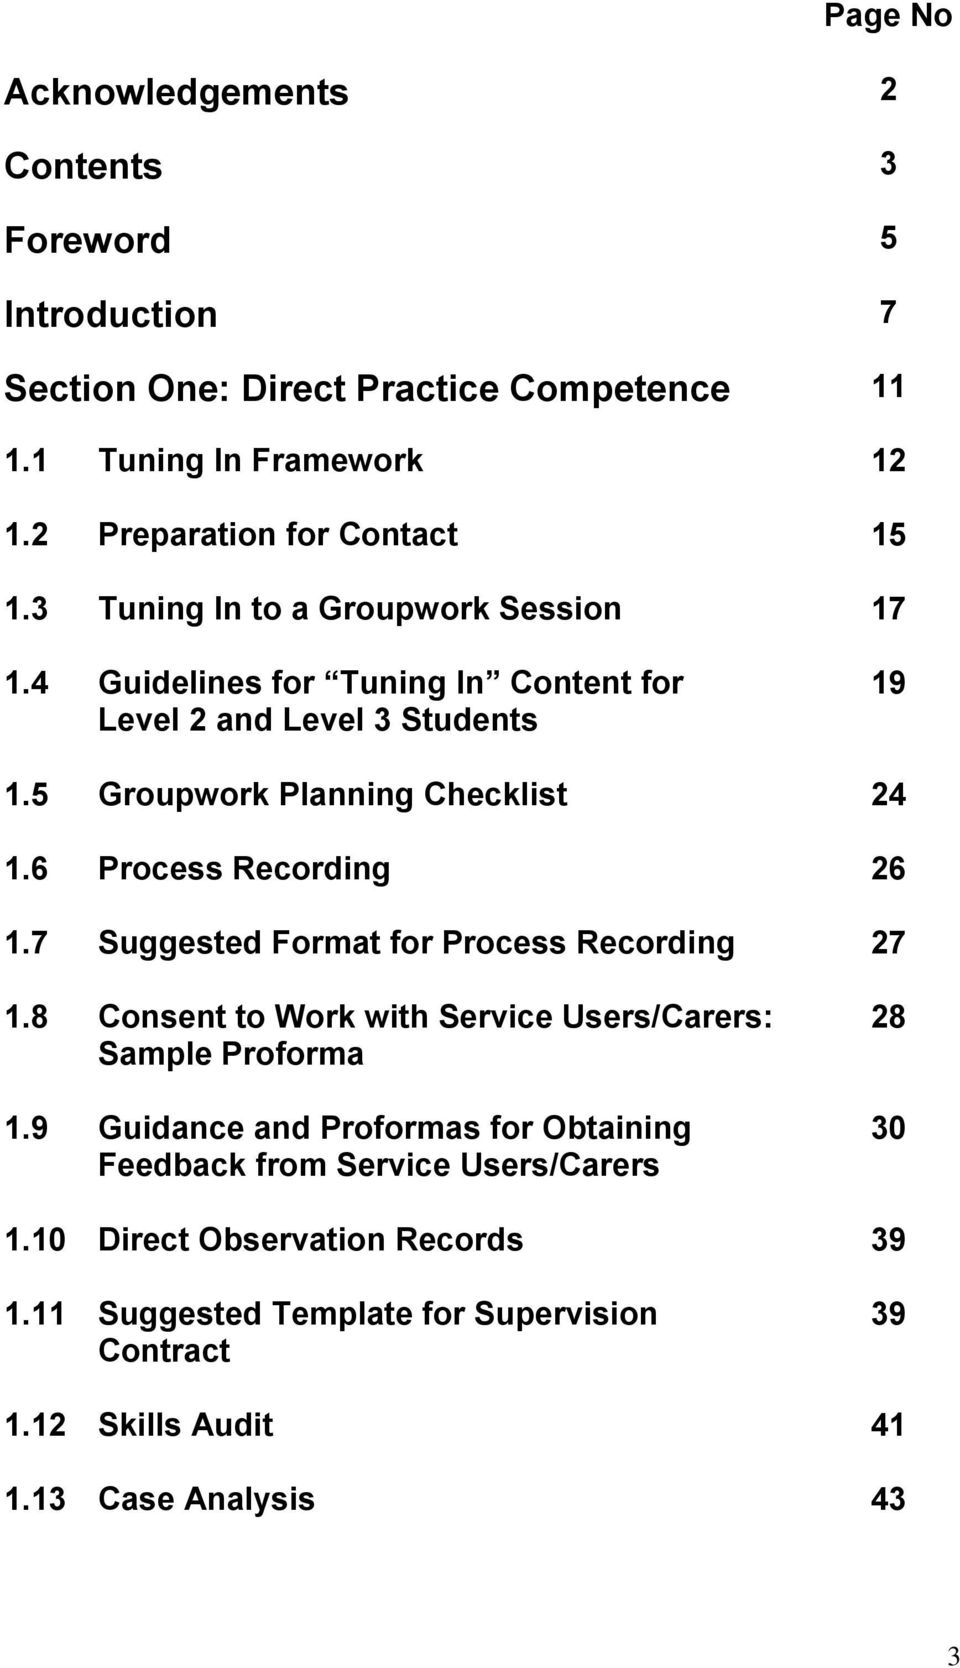 5 Groupwork Planning Checklist 24 16 Process Recording 26 17 Suggested Format For 27